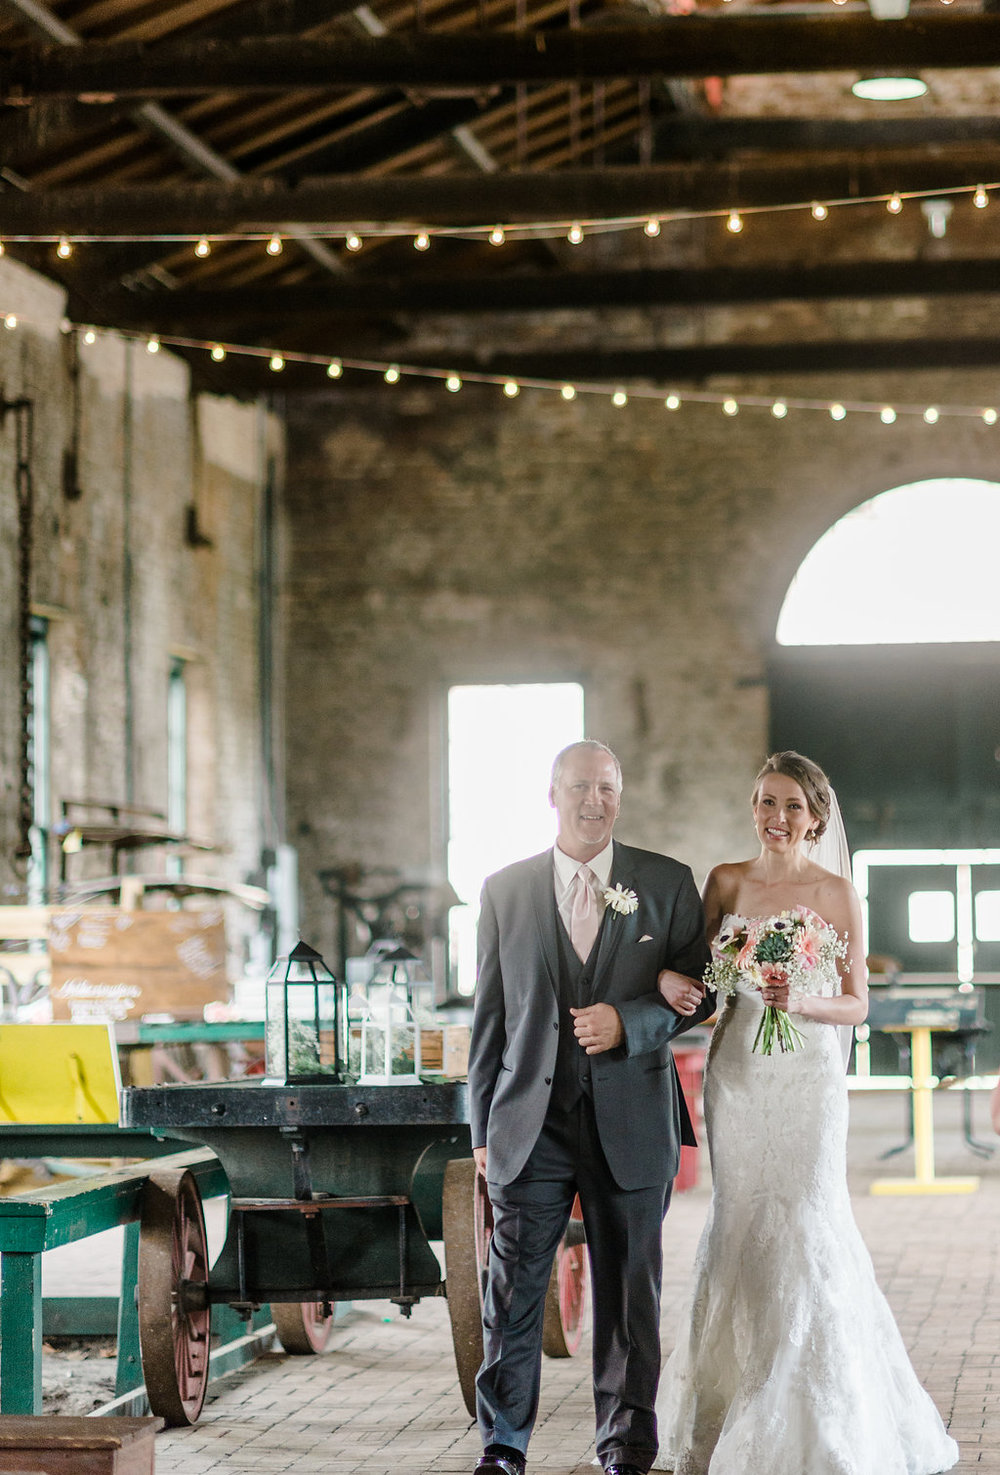 rach-lea-photography-rach-loves-troy-roundhouse-railroad-museum-wedding-ivory-and-beau-savannah-wedding-planner-savannah-weddings-savannah-florist-ivory-and-beau-bridal-boutique-succulent-blush-wedding-31.jpg